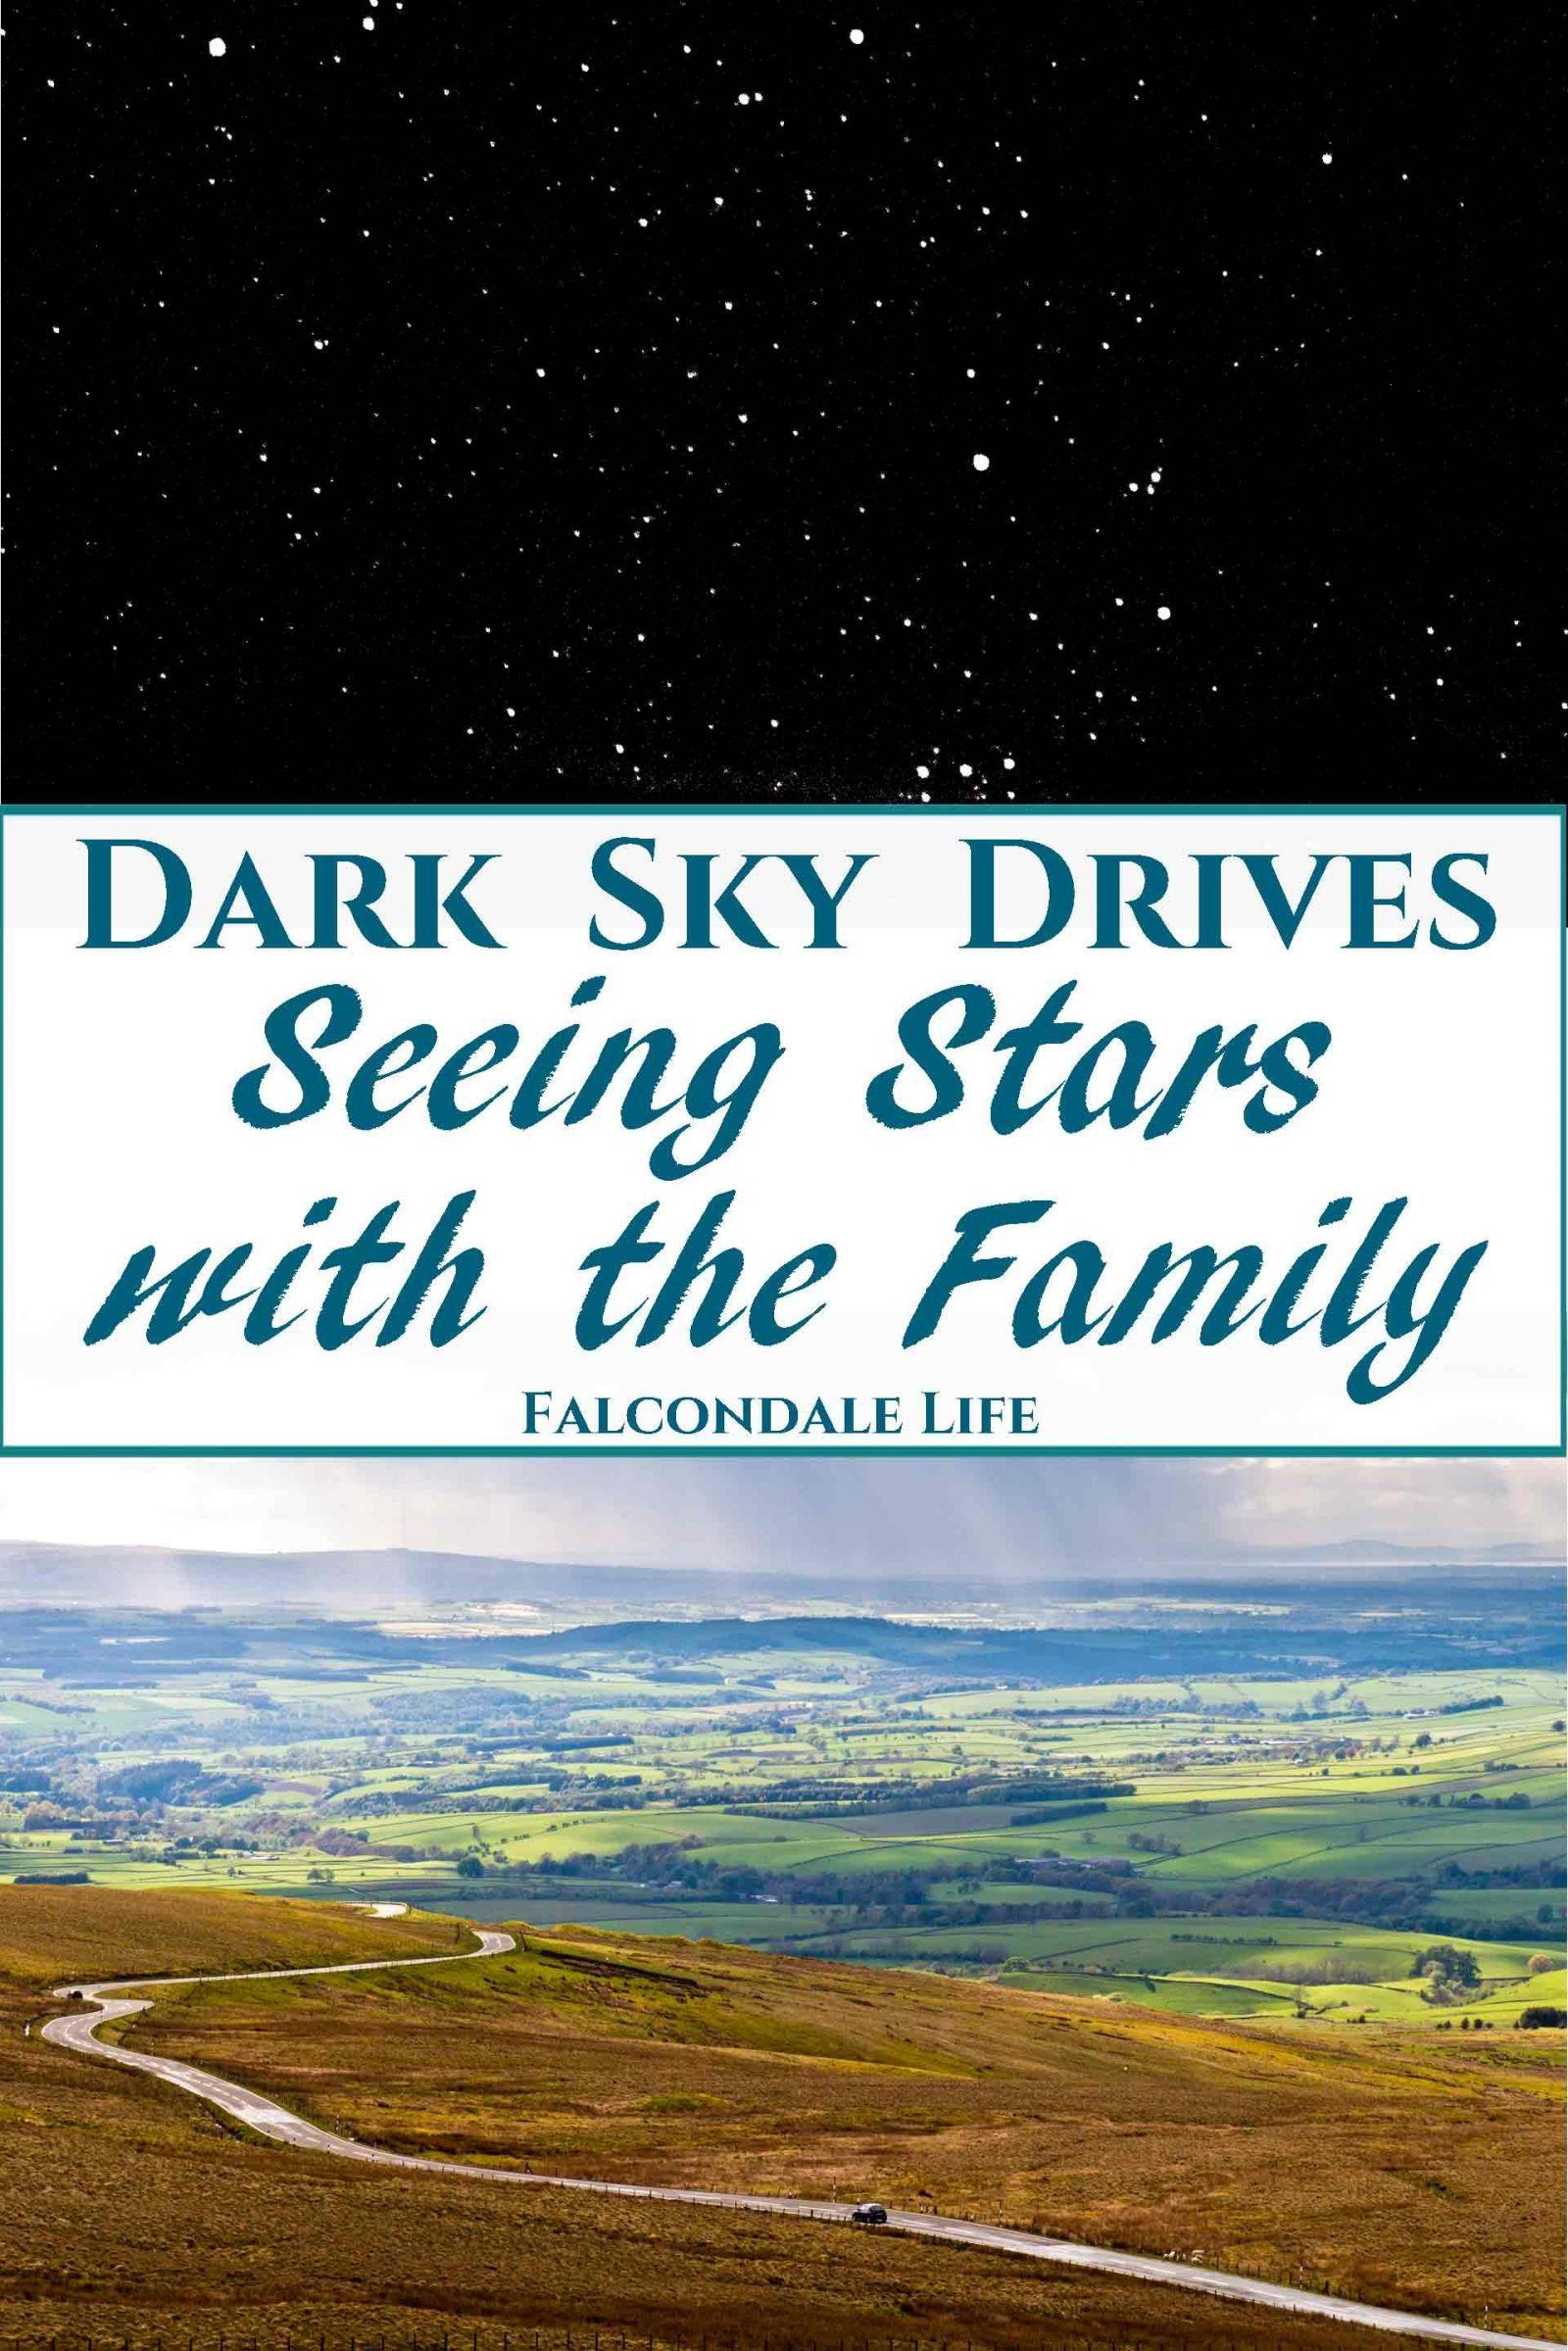 Dark Sky Drives – Seeing Stars with the Family